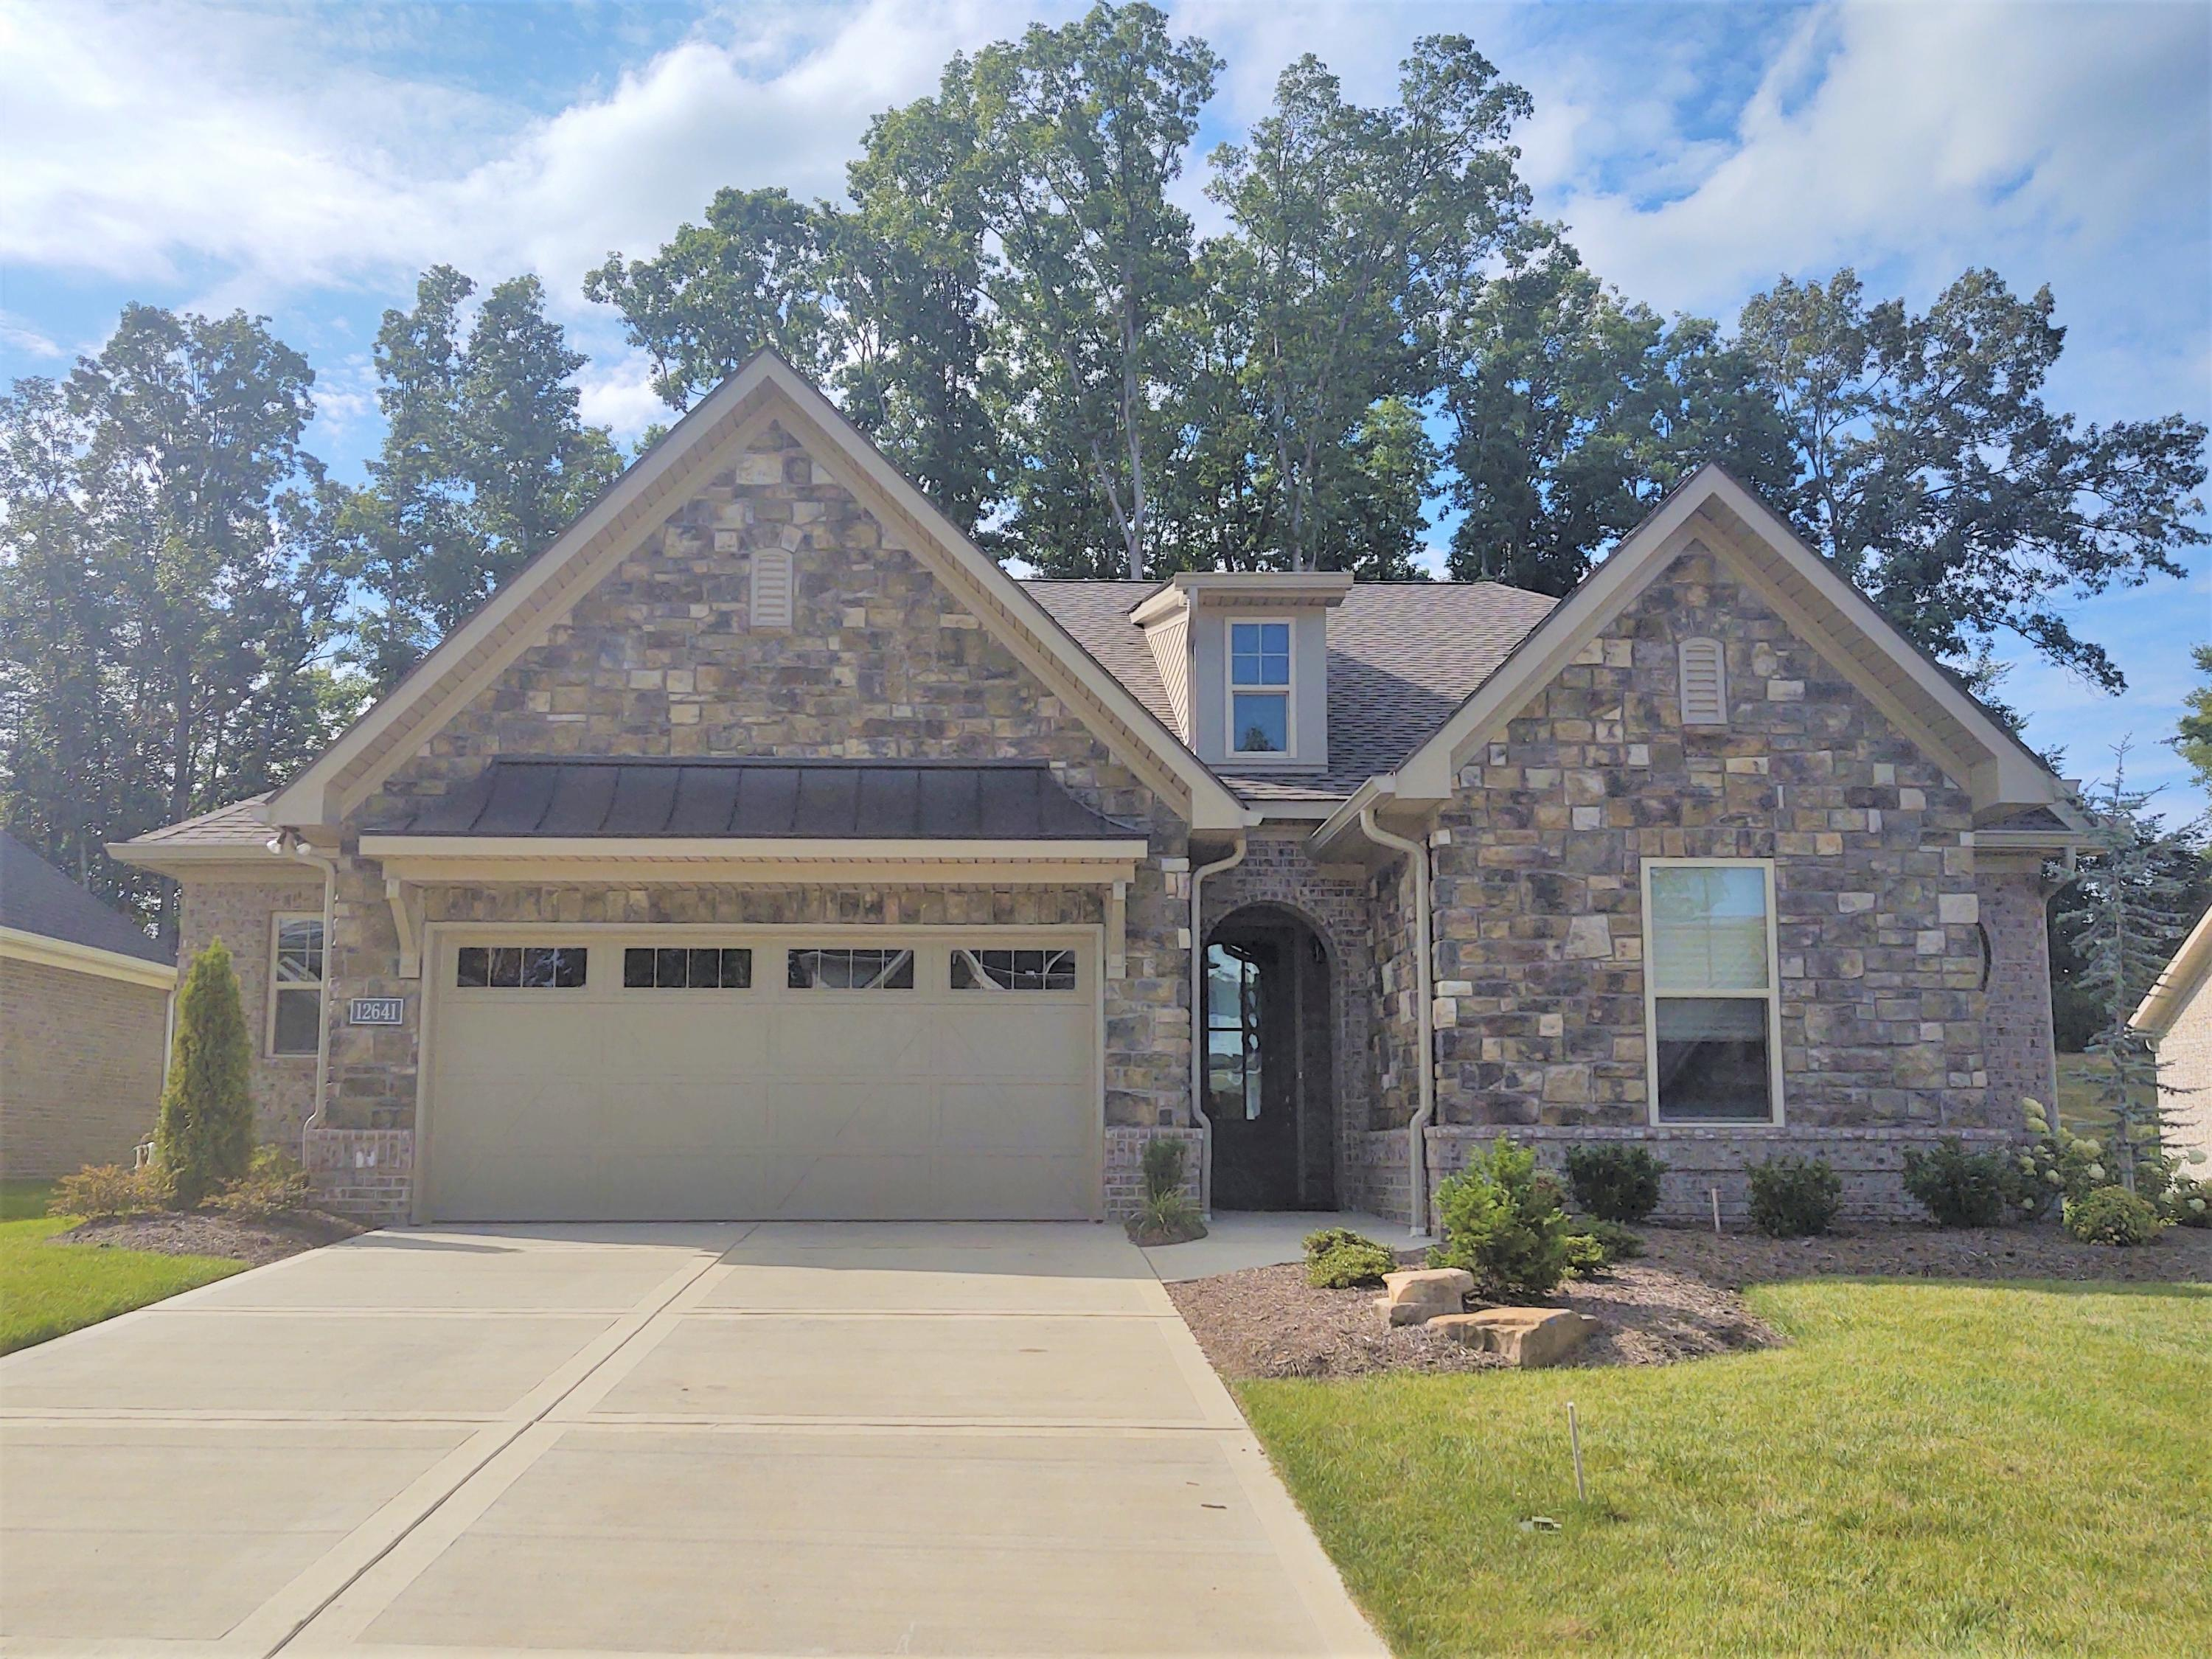 12641 Brass Lantern, Knoxville, Tennessee, United States 37934, 4 Bedrooms Bedrooms, ,3 BathroomsBathrooms,Single Family,For Sale,Brass Lantern,1124488